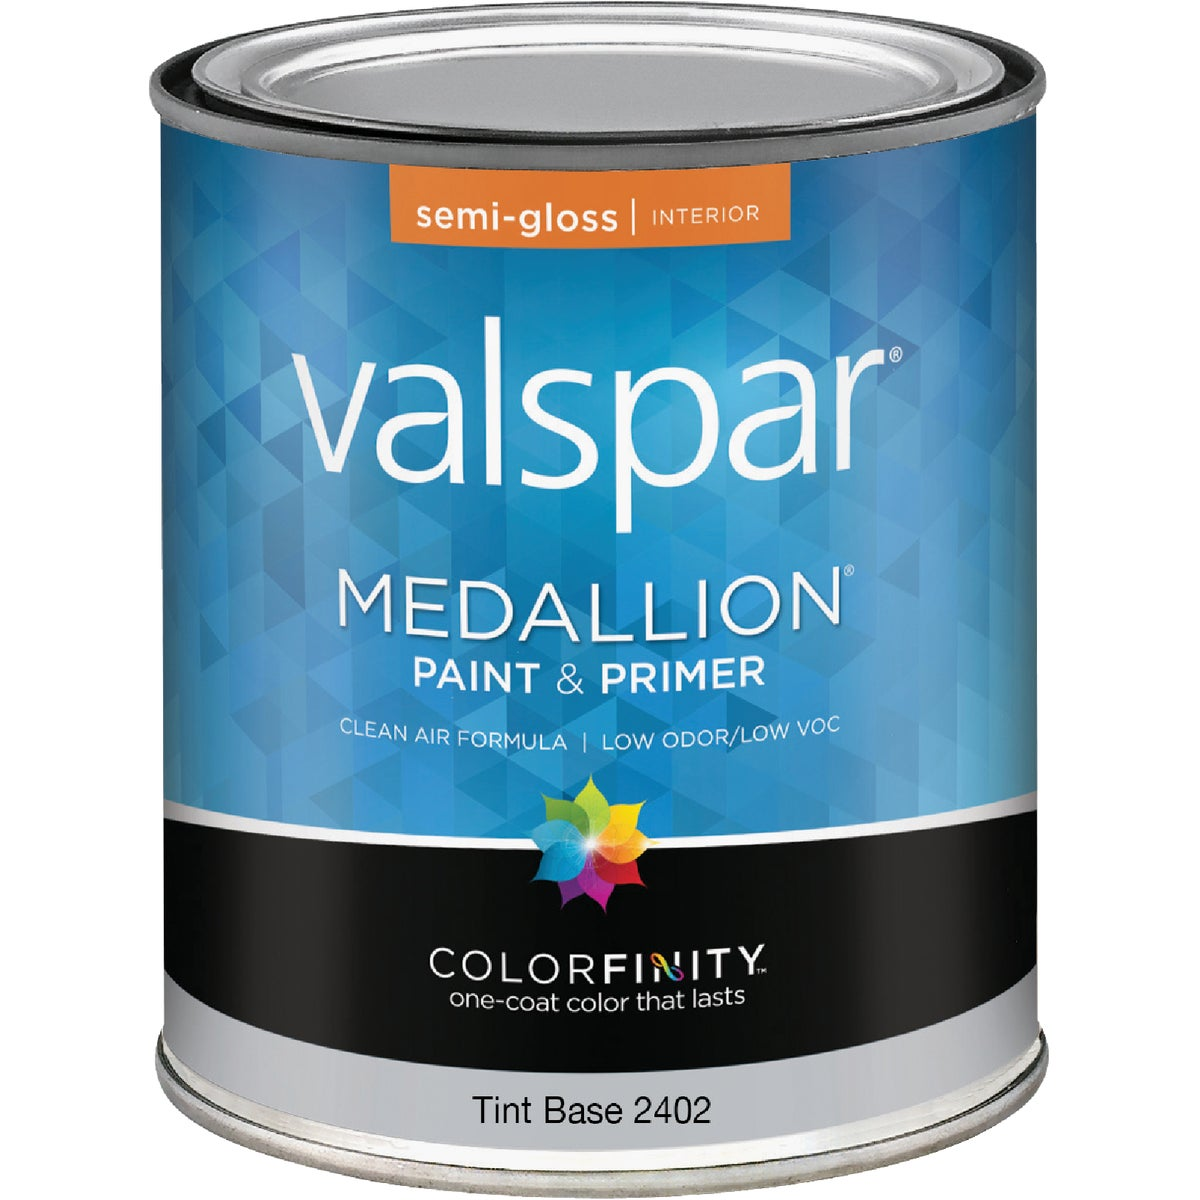 INT S/G TINT BS PAINT - 027.0002402.005 by Valspar Corp